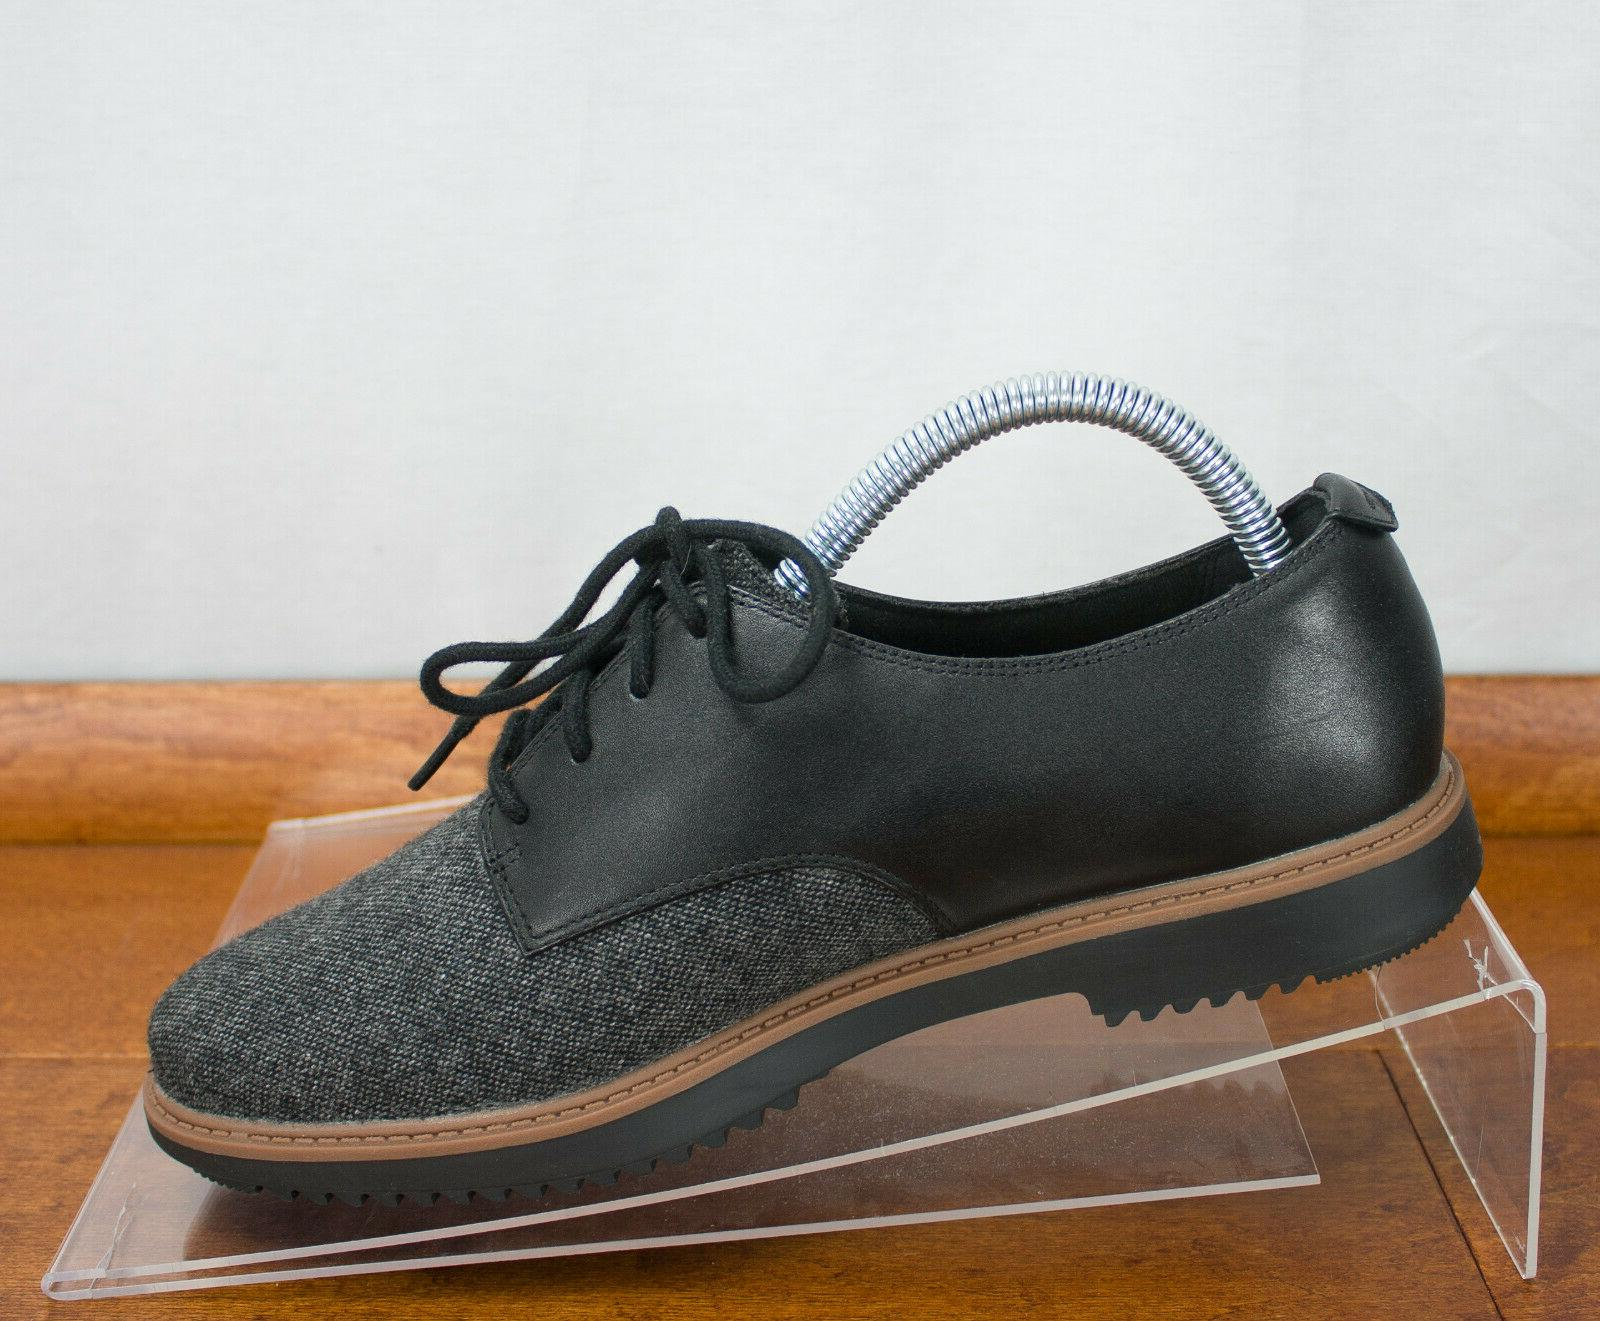 Clarks Raisie Leather Tweed Lace Up Oxford Size